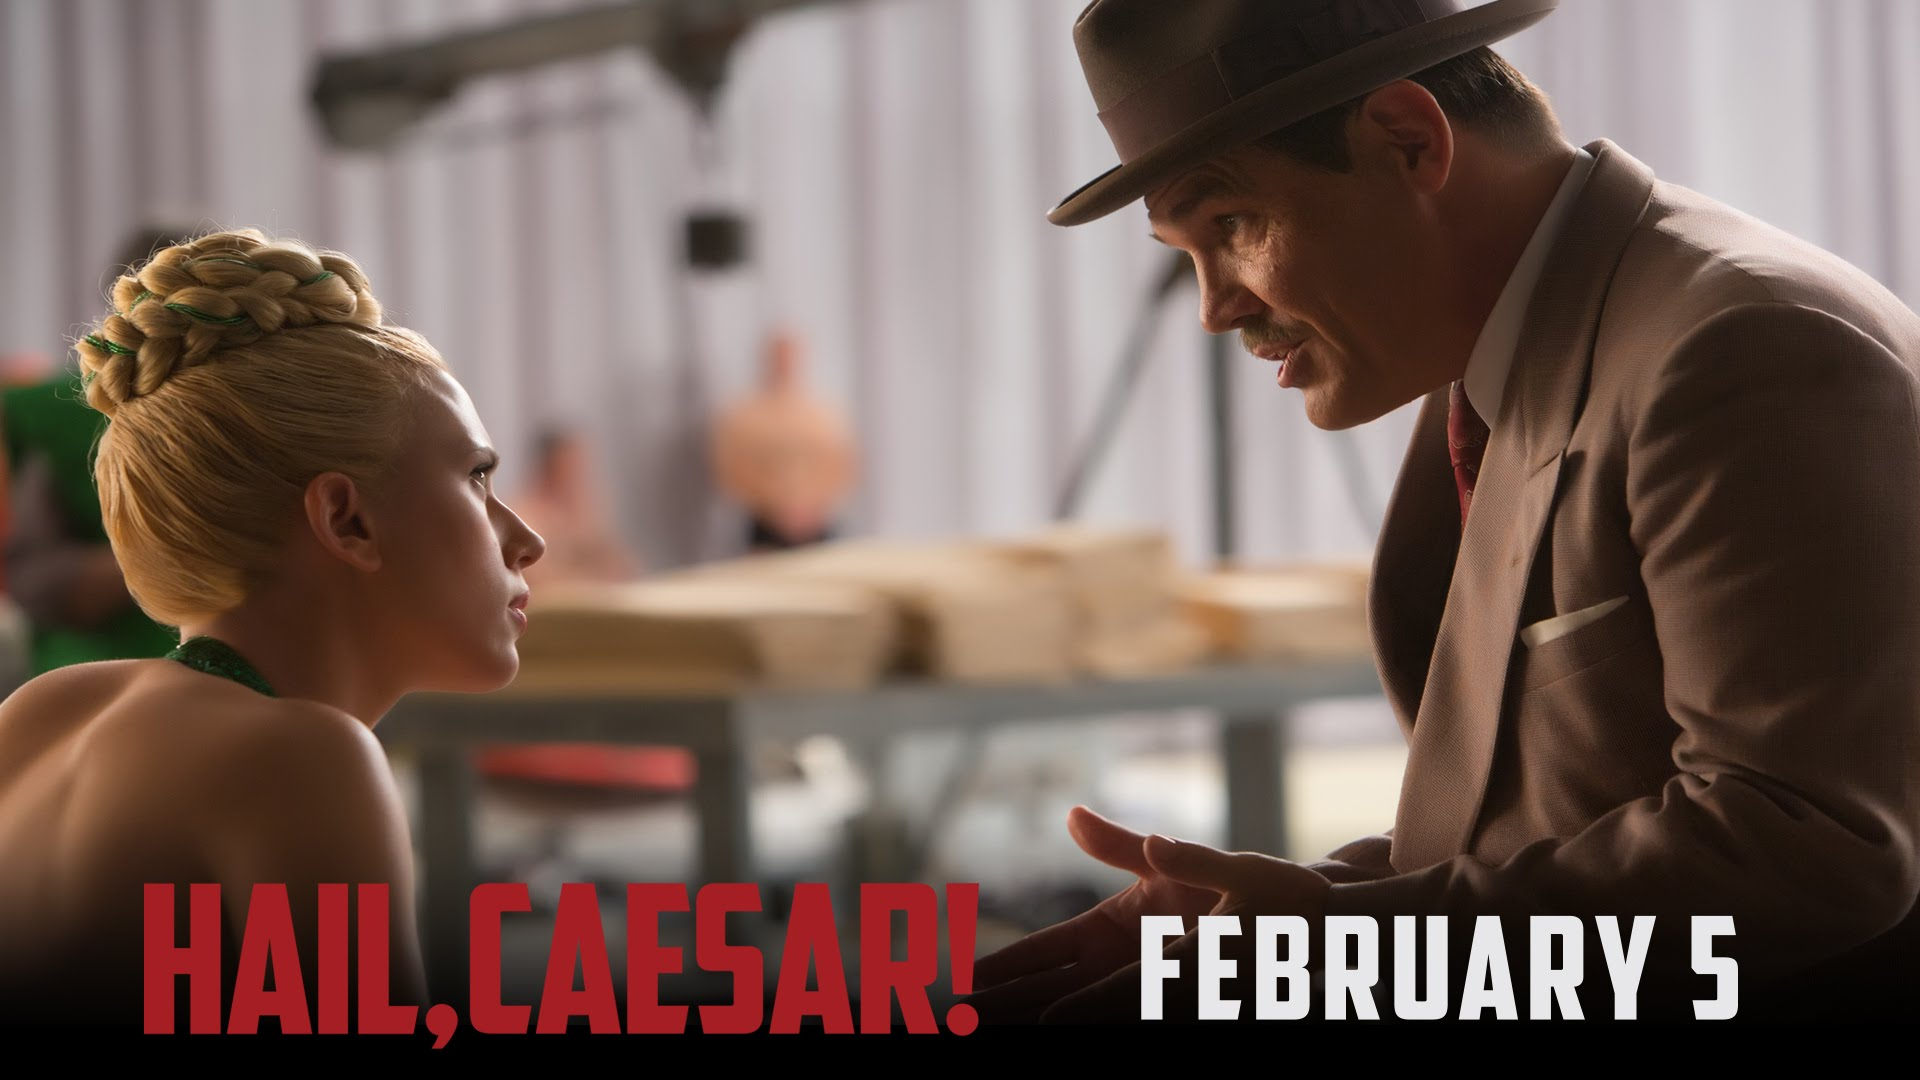 Hail, Caesar! – In Theaters February 5 (TV Spot 15) (HD)